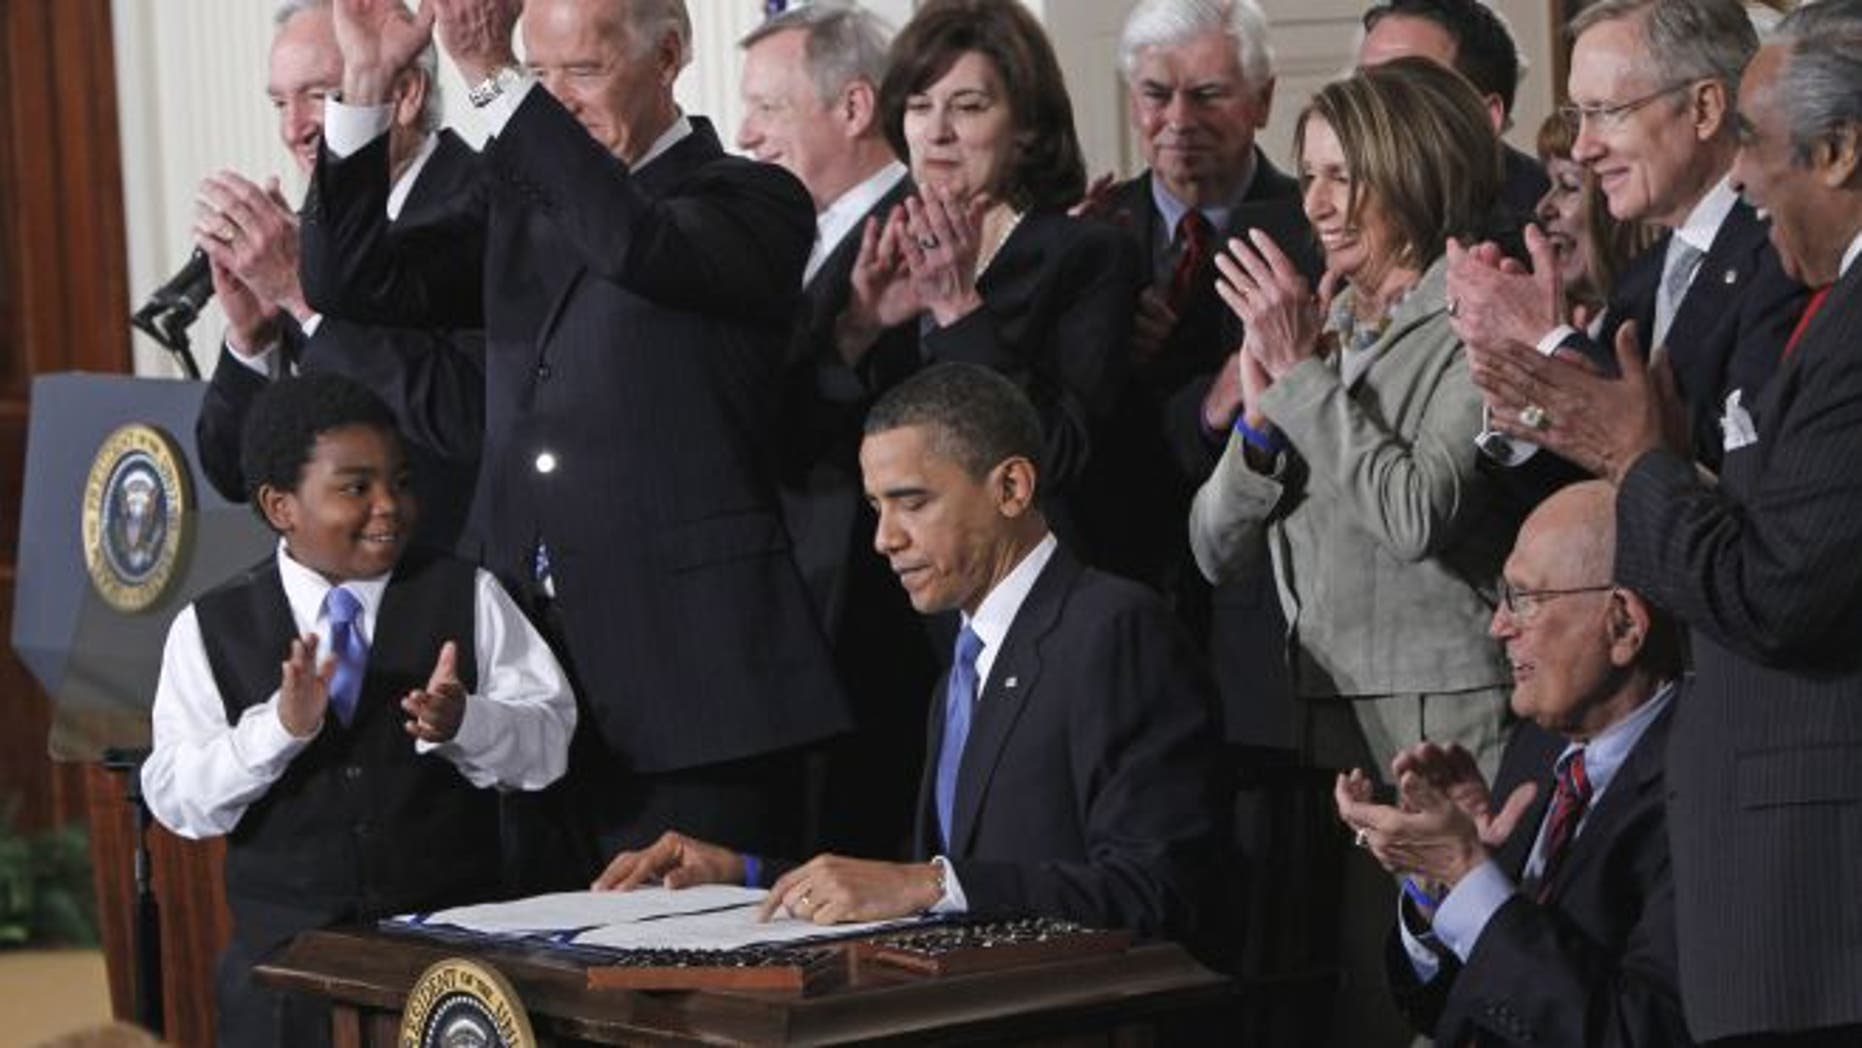 March 23, 2010: President Obama is applauded after signing the health care bill in the East Room of the White House in Washington.